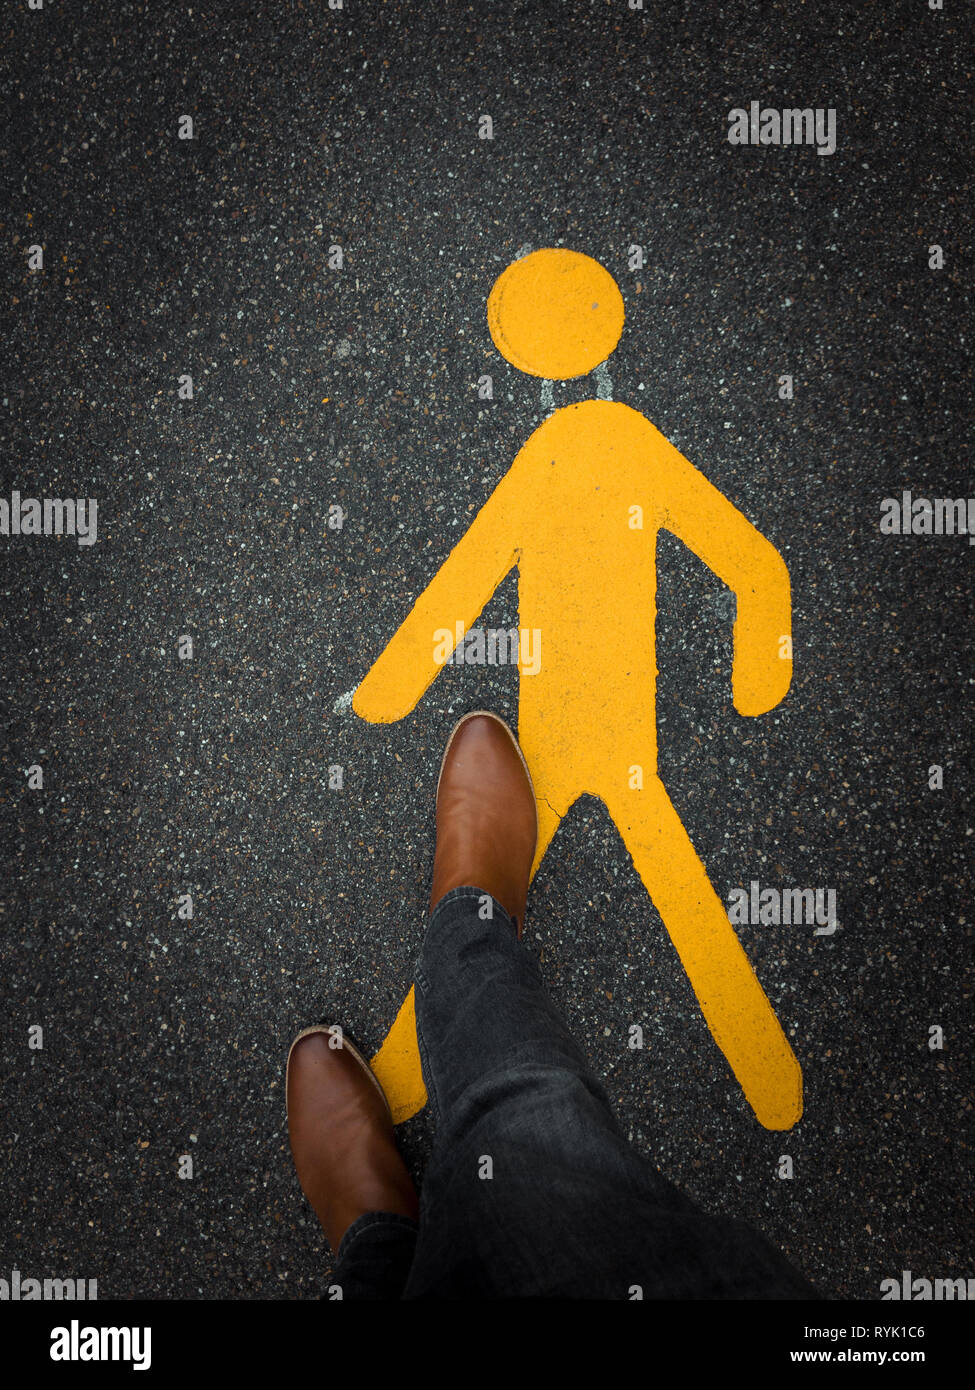 pedestrian sign on pavement with feet Stock Photo